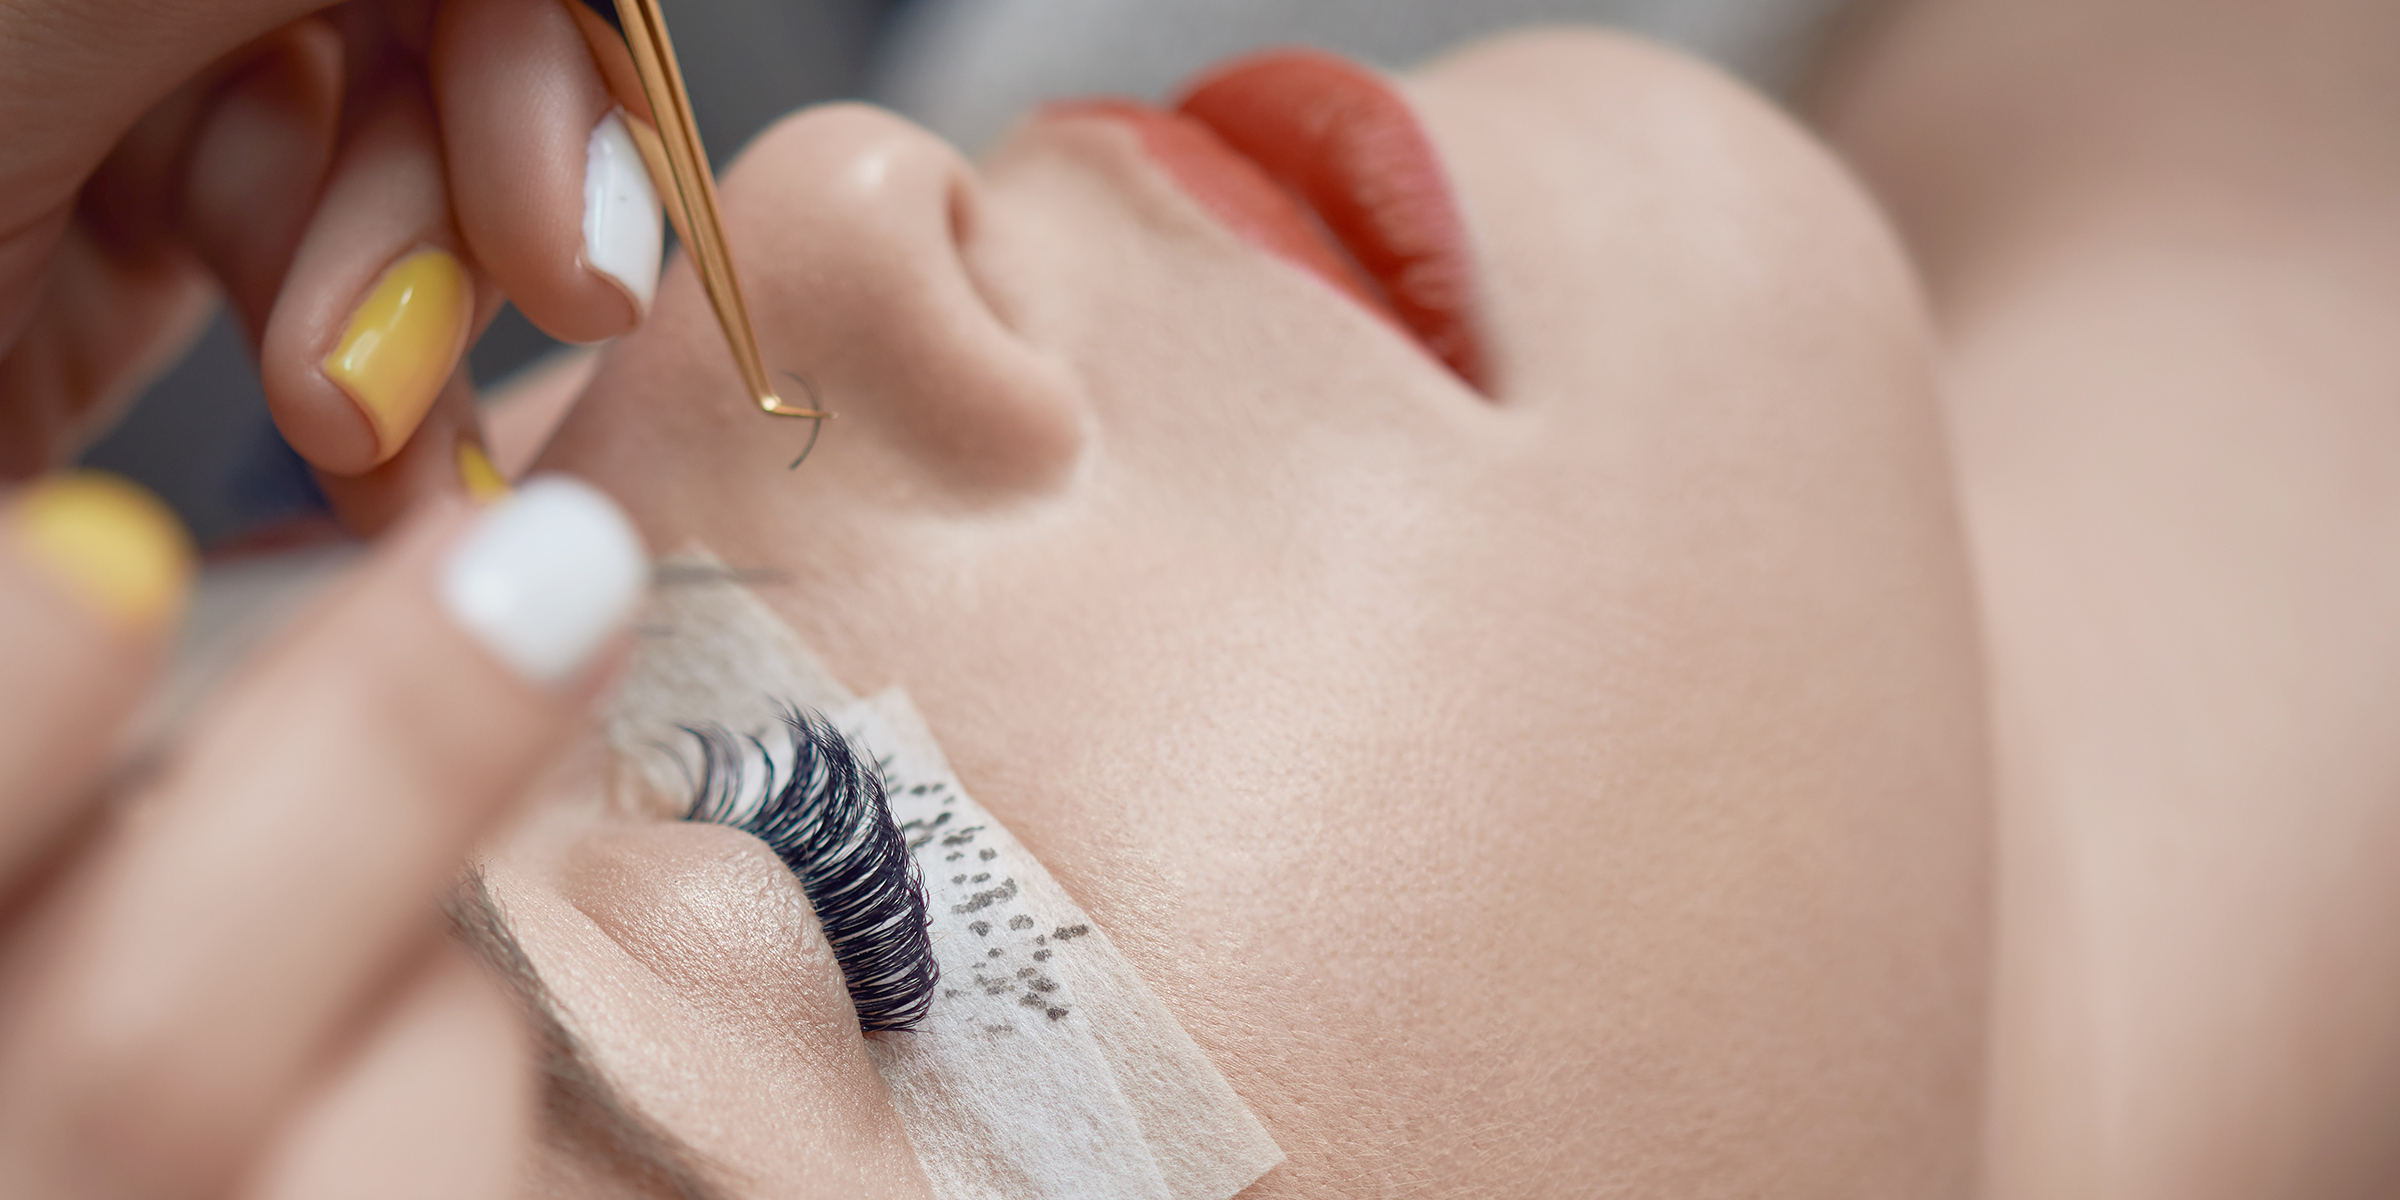 21a1a3c8e91 Eyelash extensions 101: Everything you need to know about lash extensions